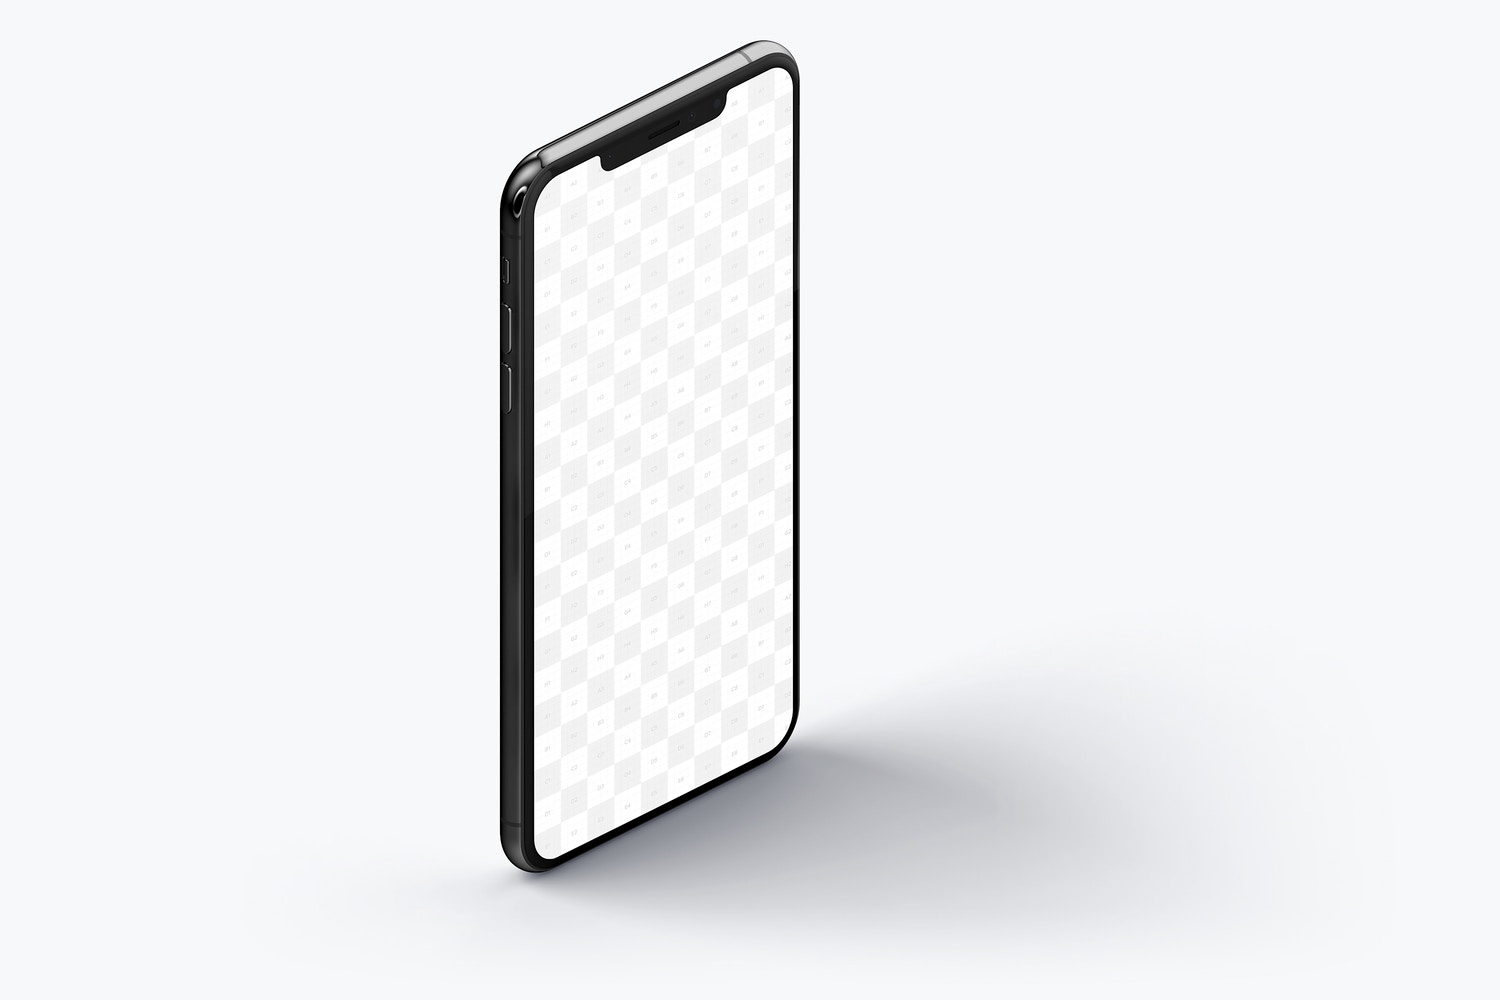 iPhone XS Max Mockup, Isometric Right View 02 (2) by Original Mockups on Original Mockups